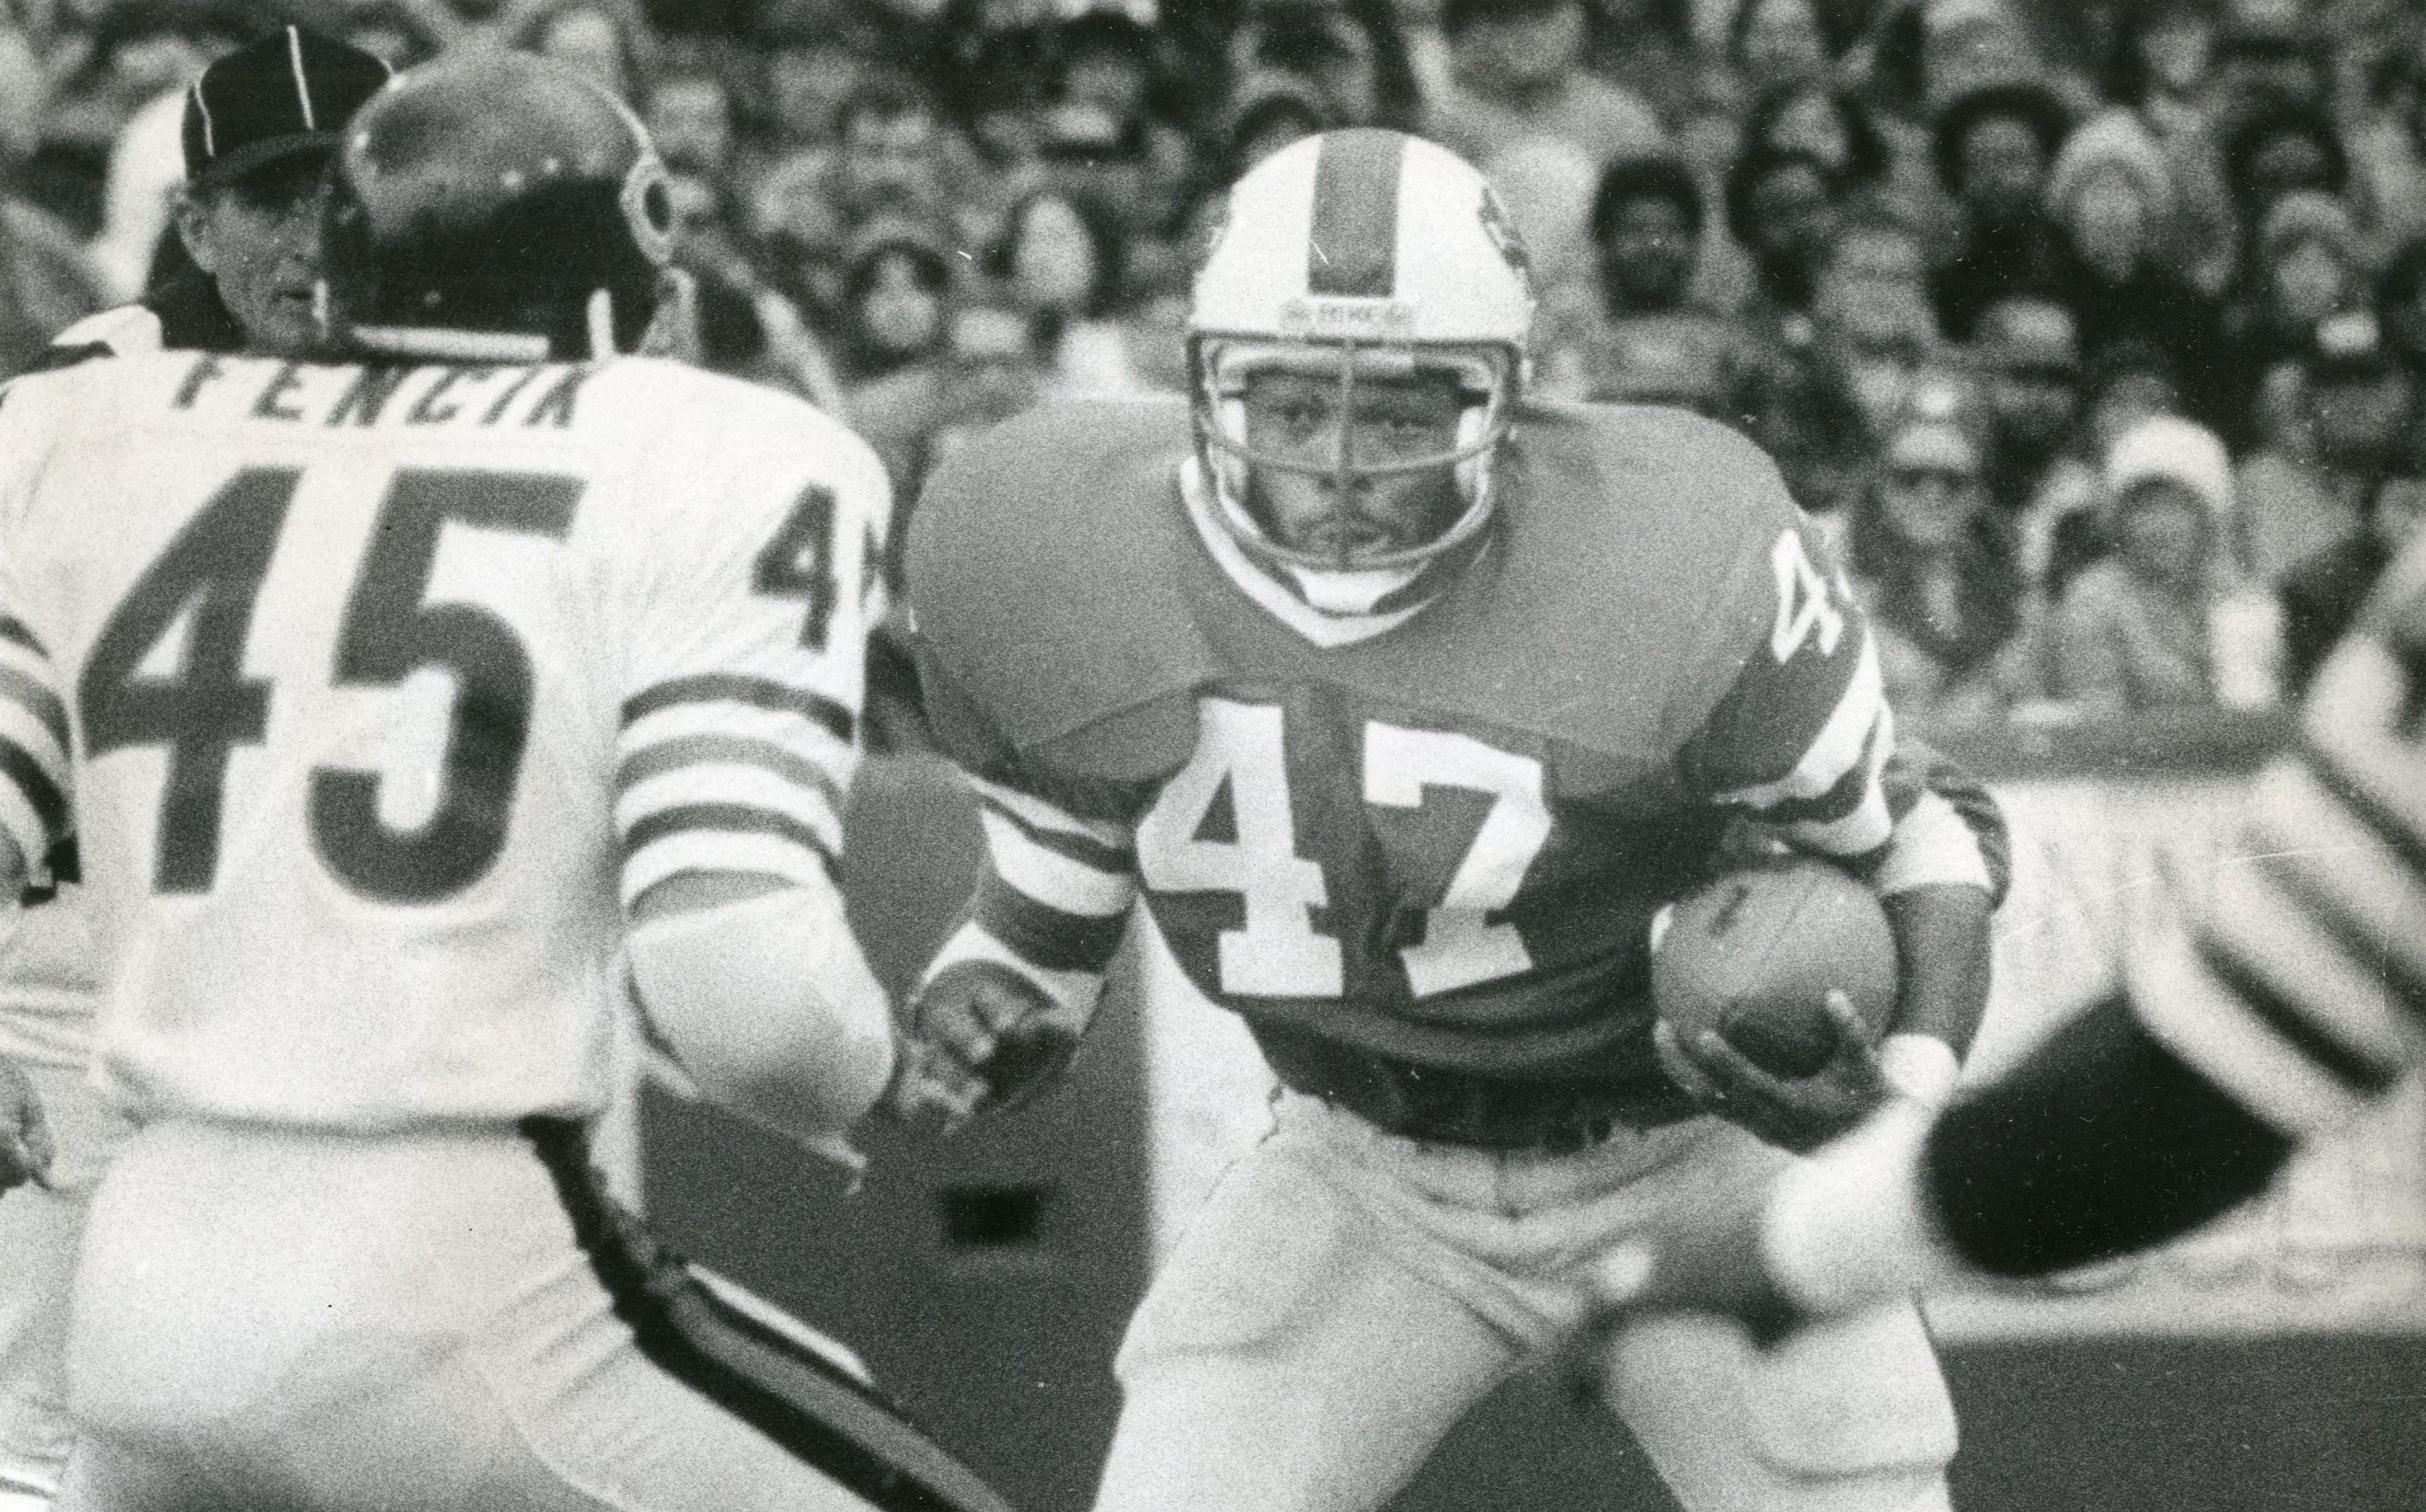 Curtis Brown is seen during one of his games as a Bill, this one on Oct. 7, 1979. (Buffalo News archives)